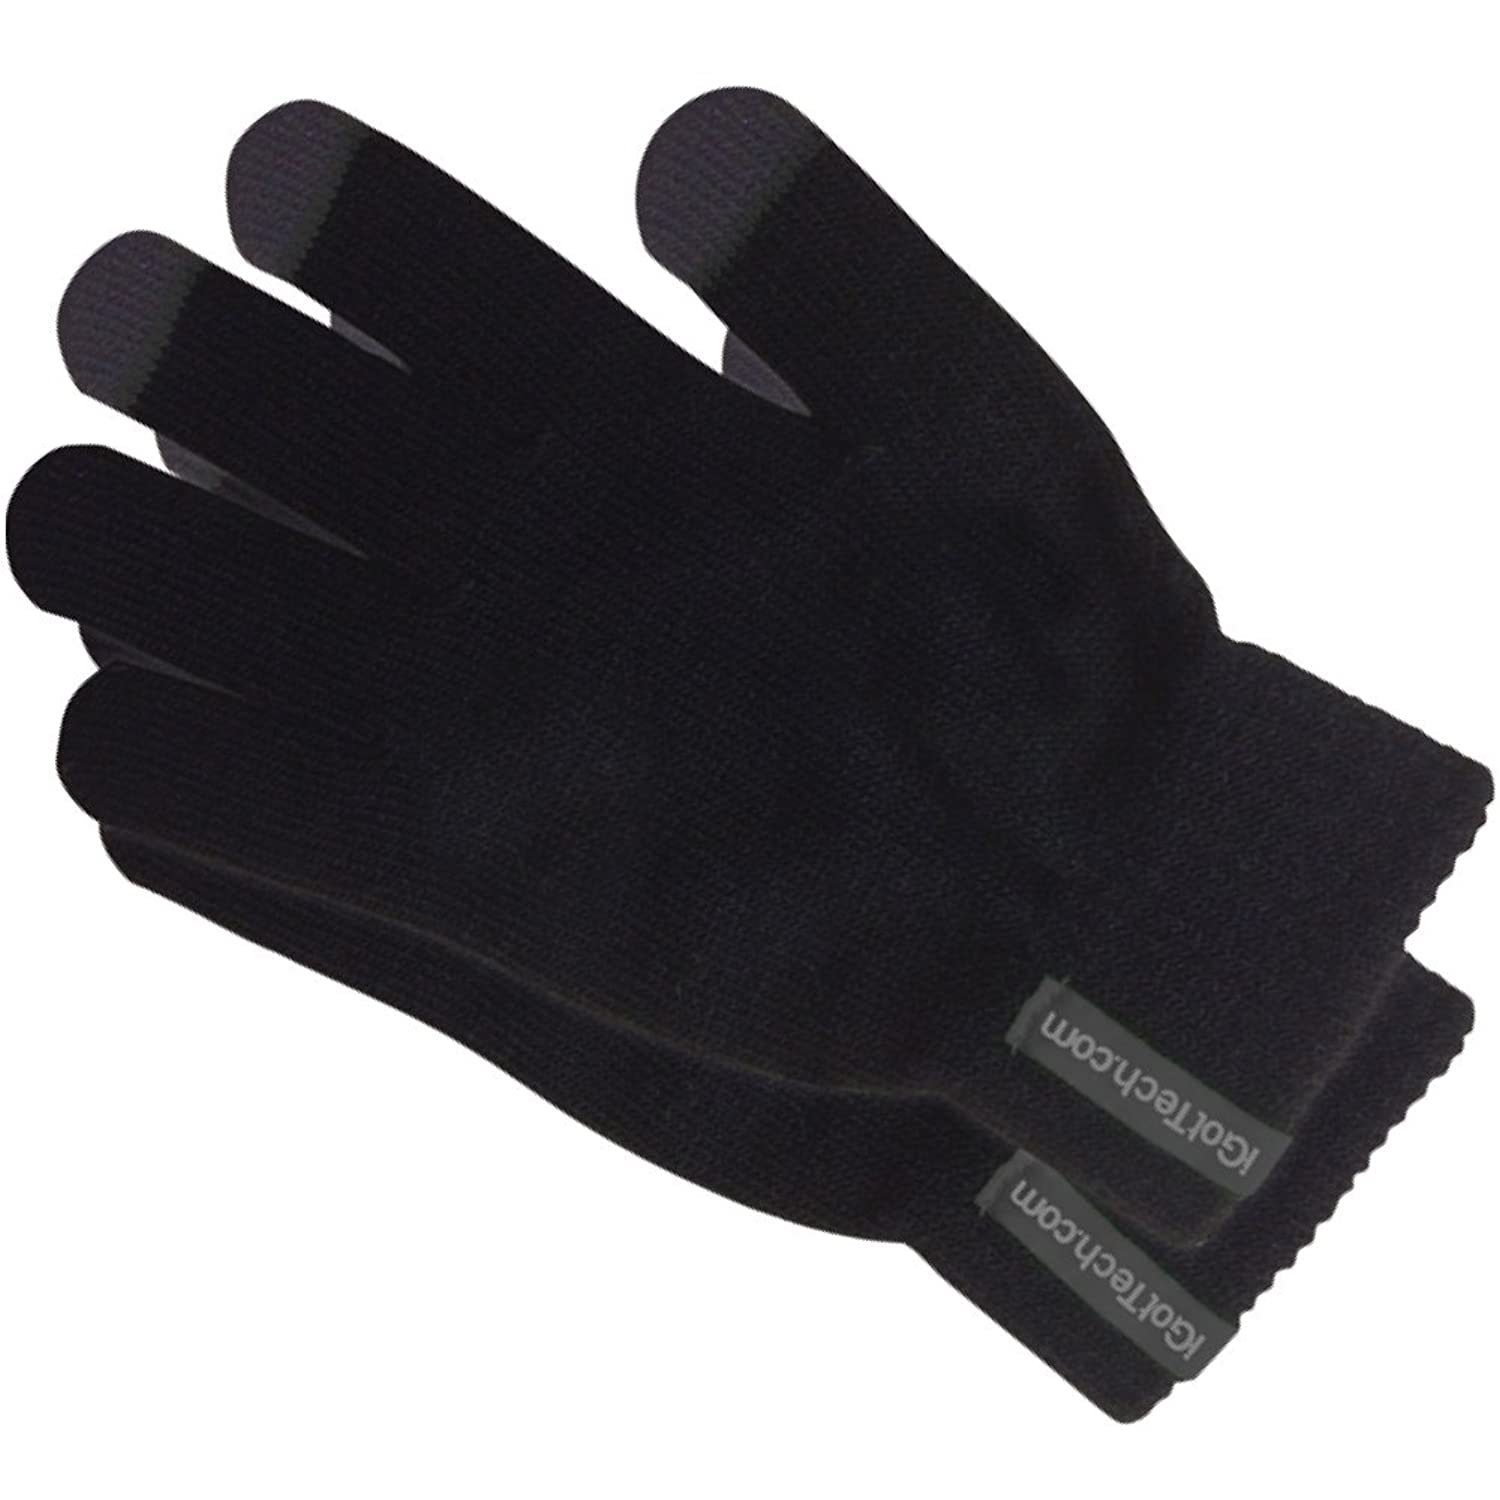 Mens gloves for smartphones - Igottech Texting Gloves For Smartphones And Touchscreens Black With Gray Details At Amazon Men S Clothing Store